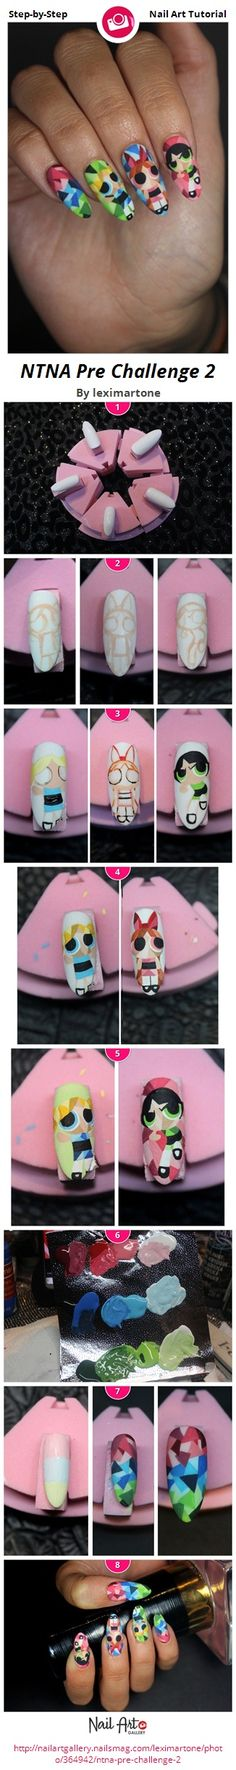 The Powerpuff Girls - Next Top Nail Artist Pre Challenge 2 by leximartone from Nail Art Gallery girls nails, top nail, girl nail, pretti nail, nail artist, nail arts, nail design, nail artnail, artnail polish